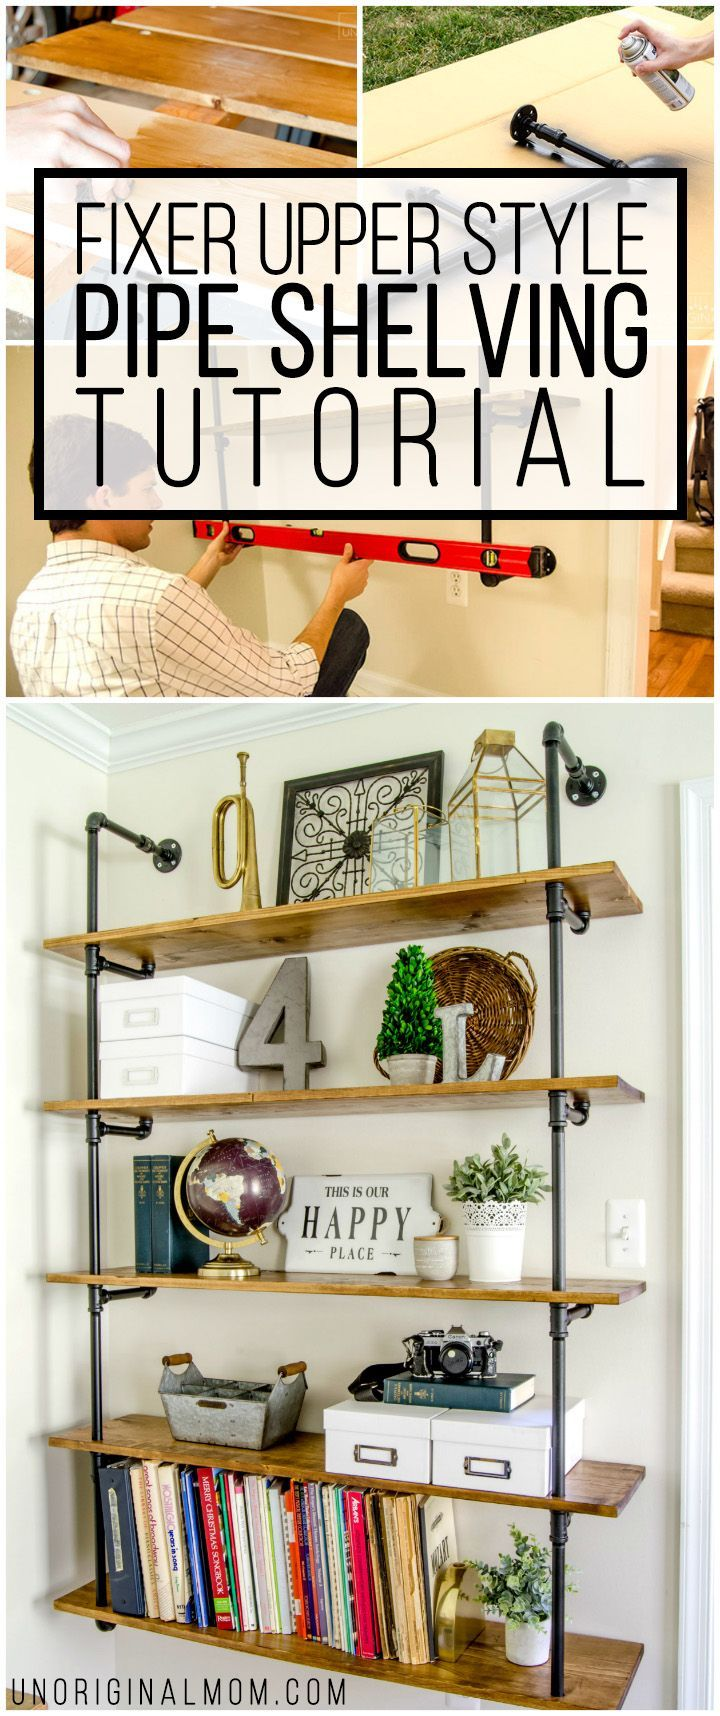 DIY Fixer Upper Pipe Shelving Tutorial #industrialfarmhouselivingroom